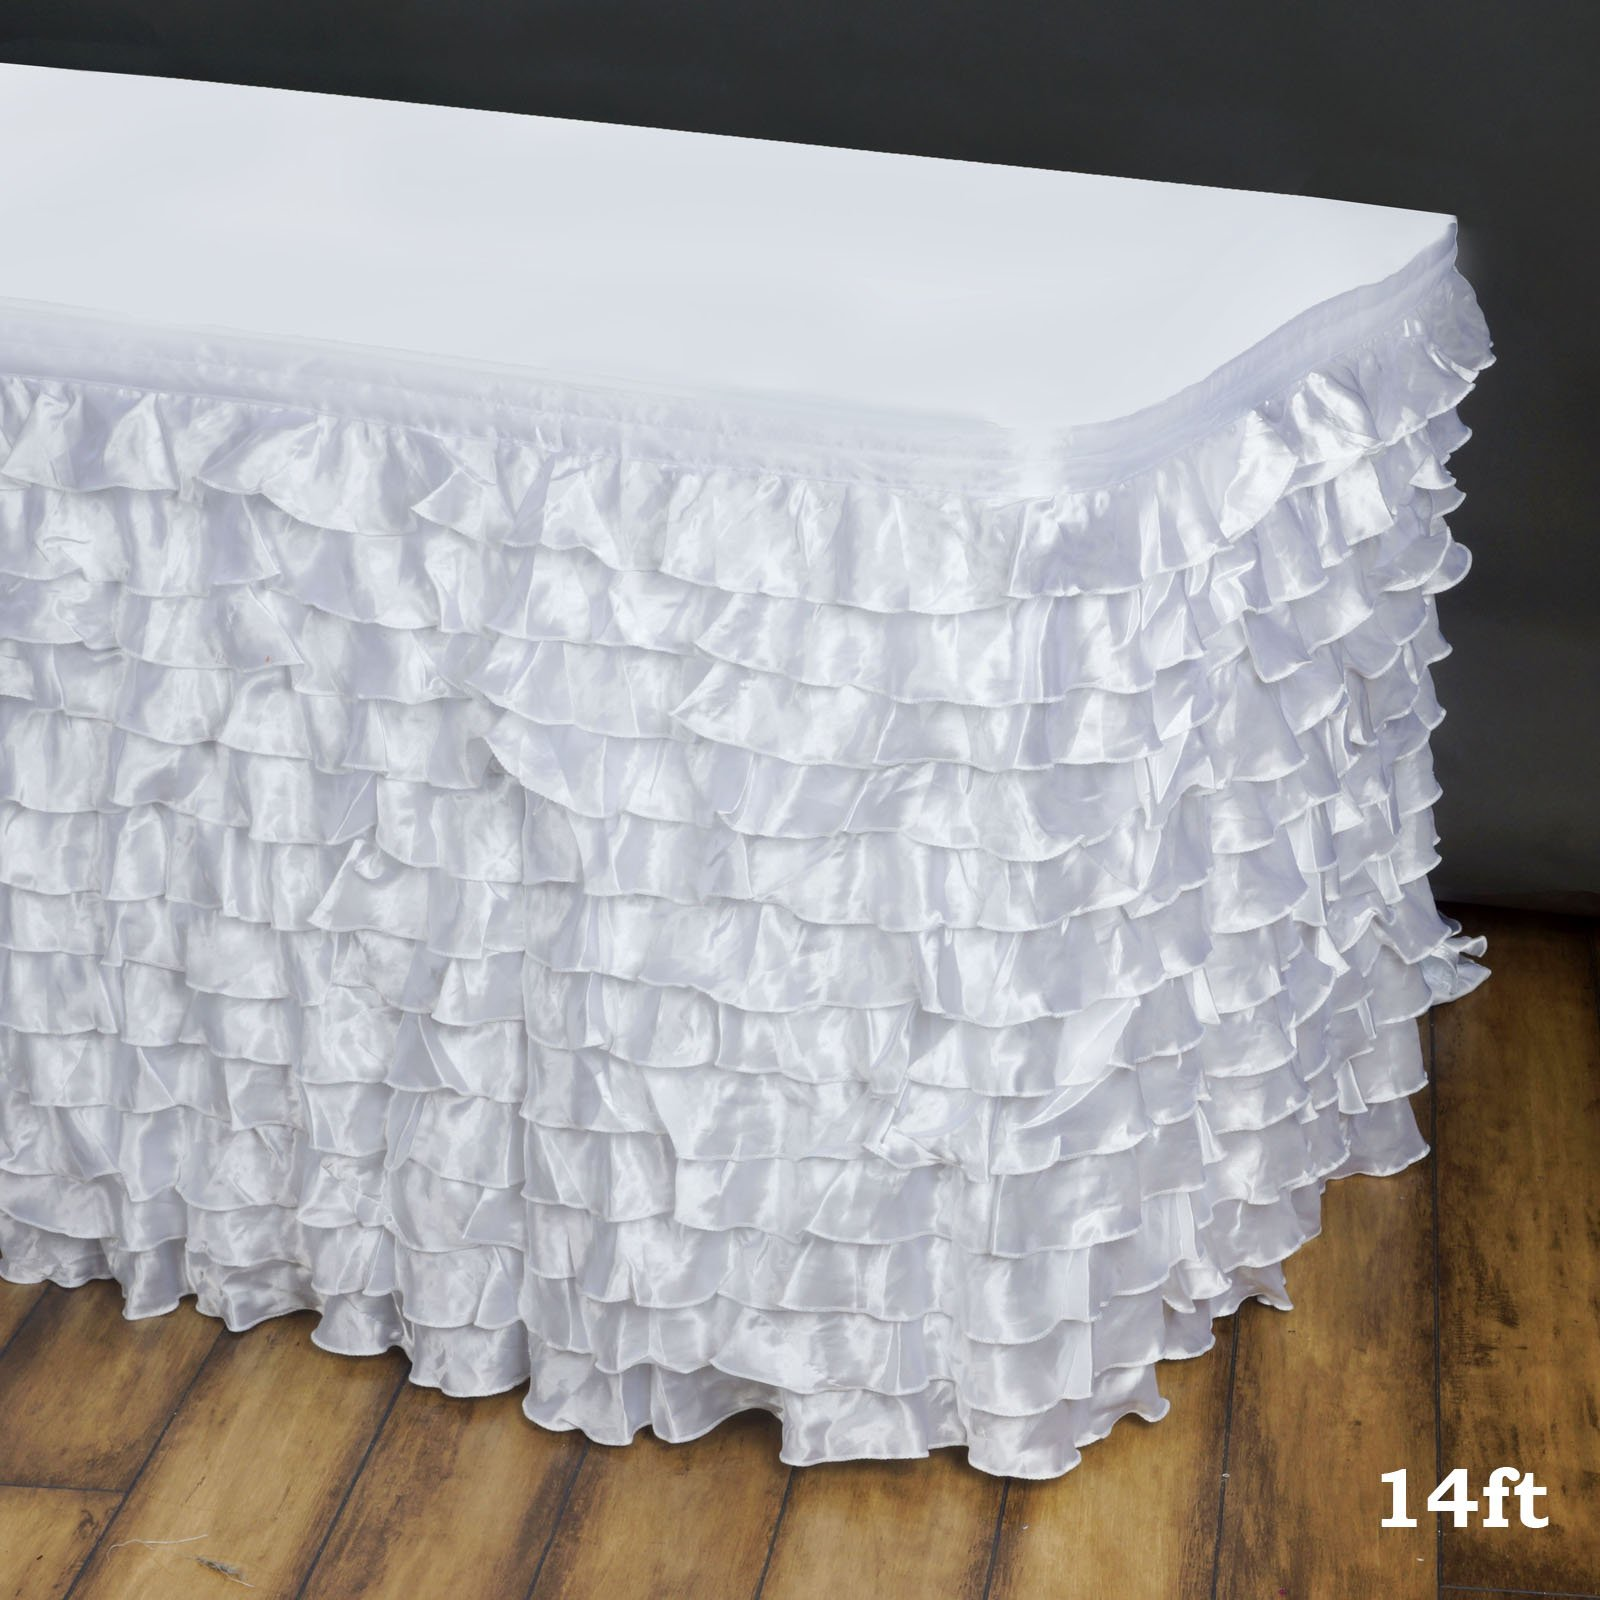 Efavormart 14ft Flamenca Satin Ruffle Table Skirt for Kitchen Dining Catering Wedding Birthday Party Decorations Events - White